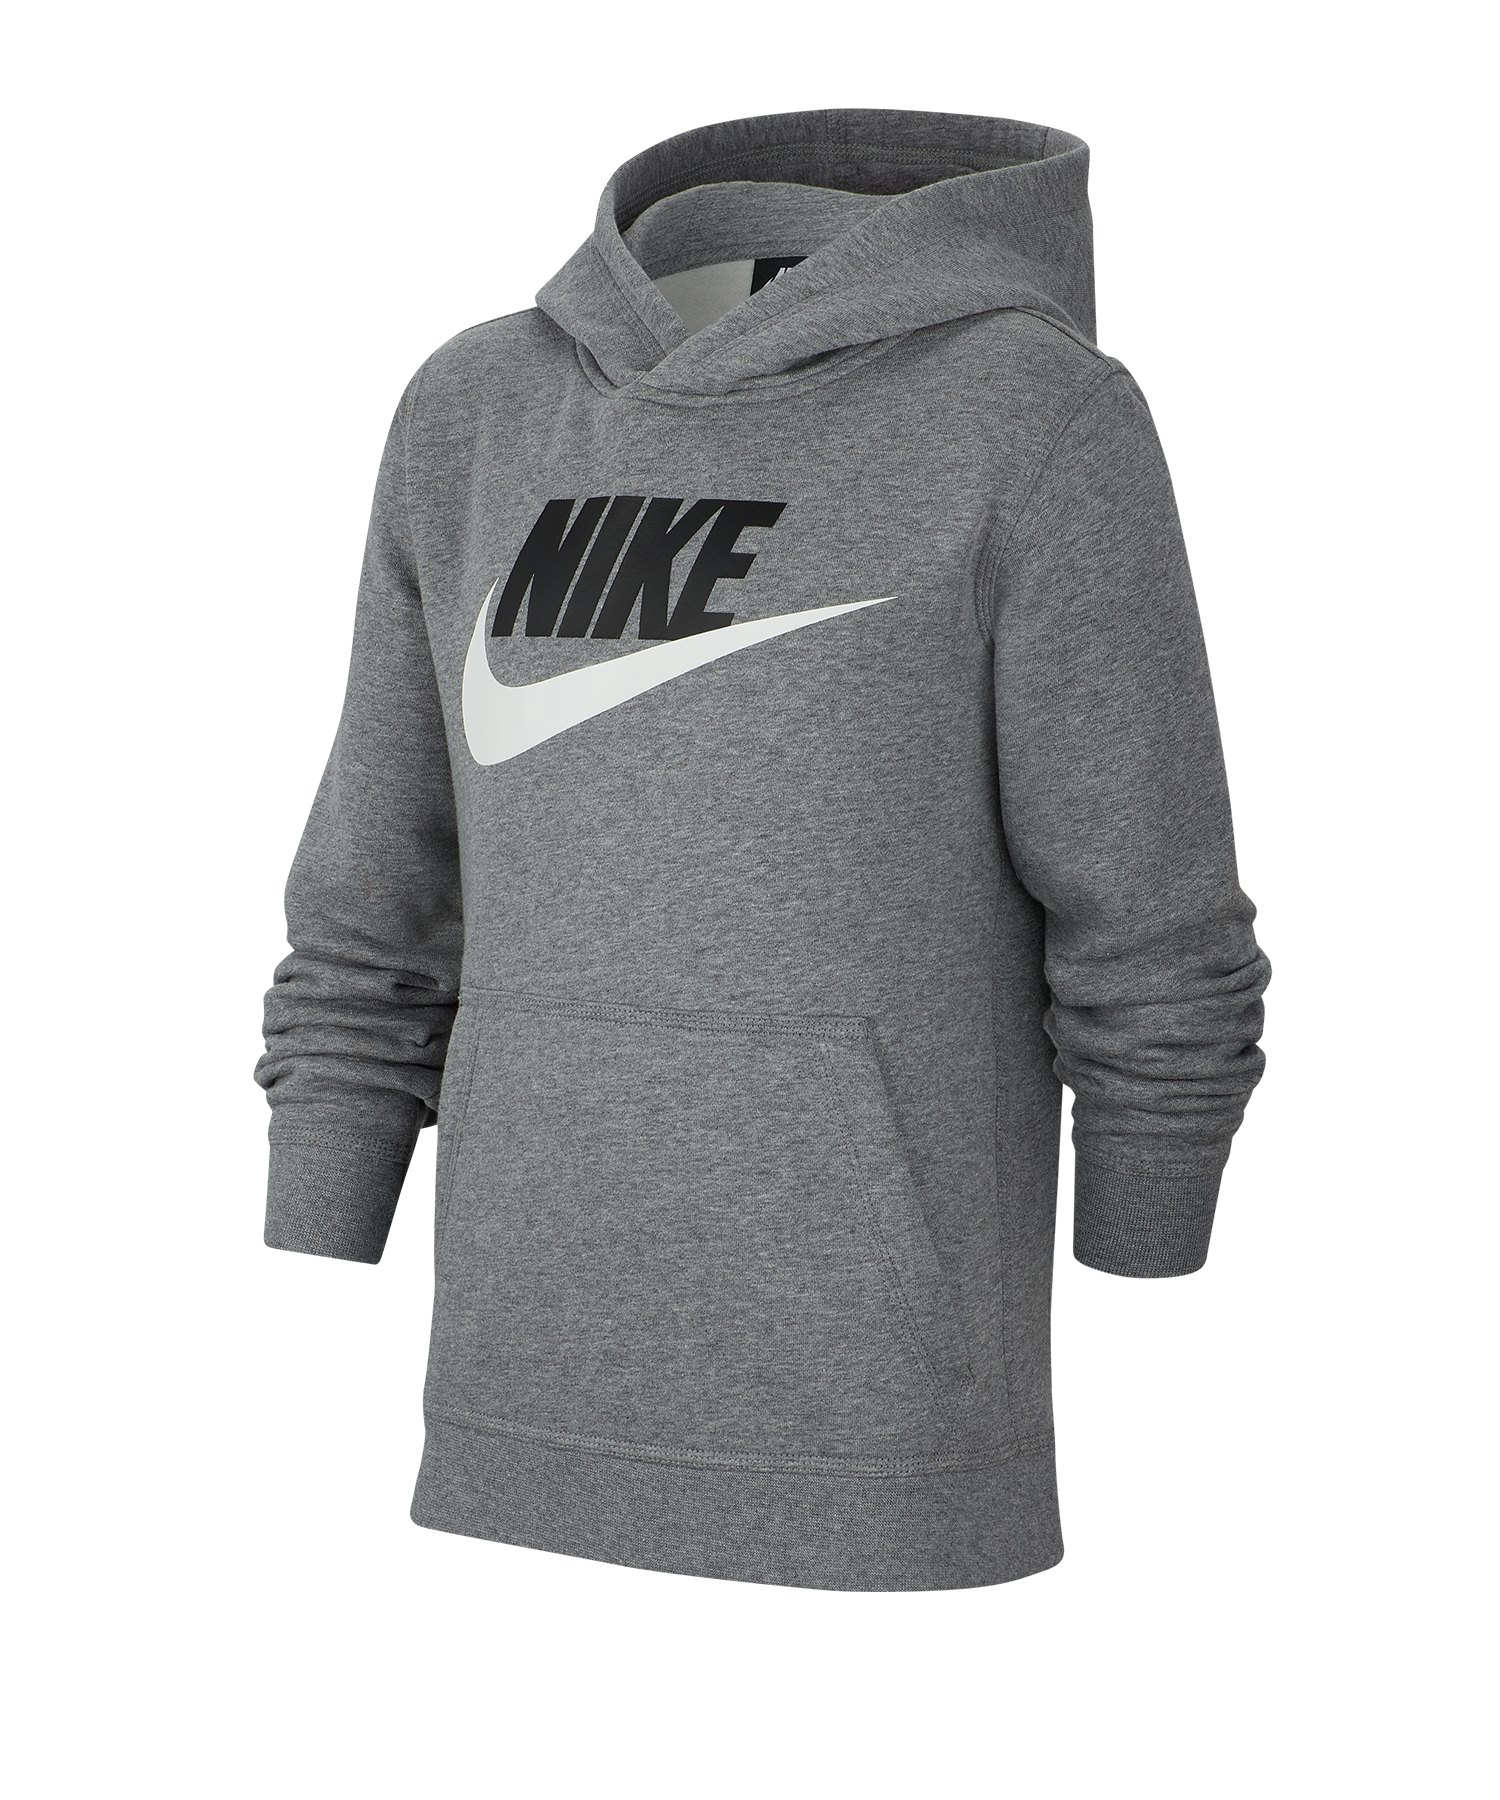 Nike Club Fleece Hoody Kapuzenpullover Kids F091 - grau